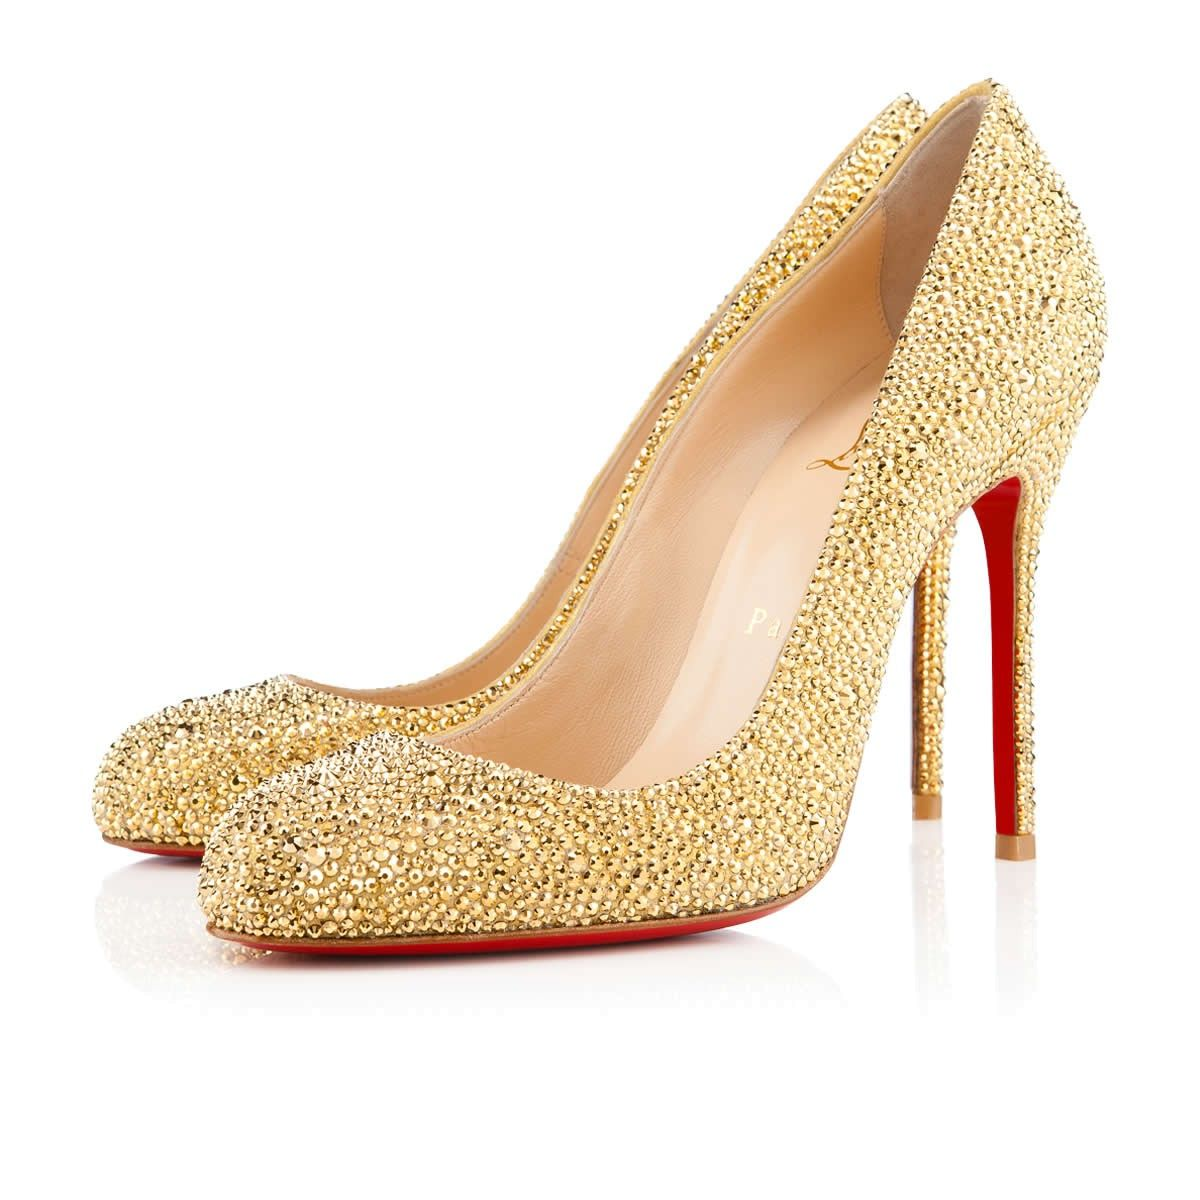 Christian Louboutin Very Prive patent red peeptoe pumps